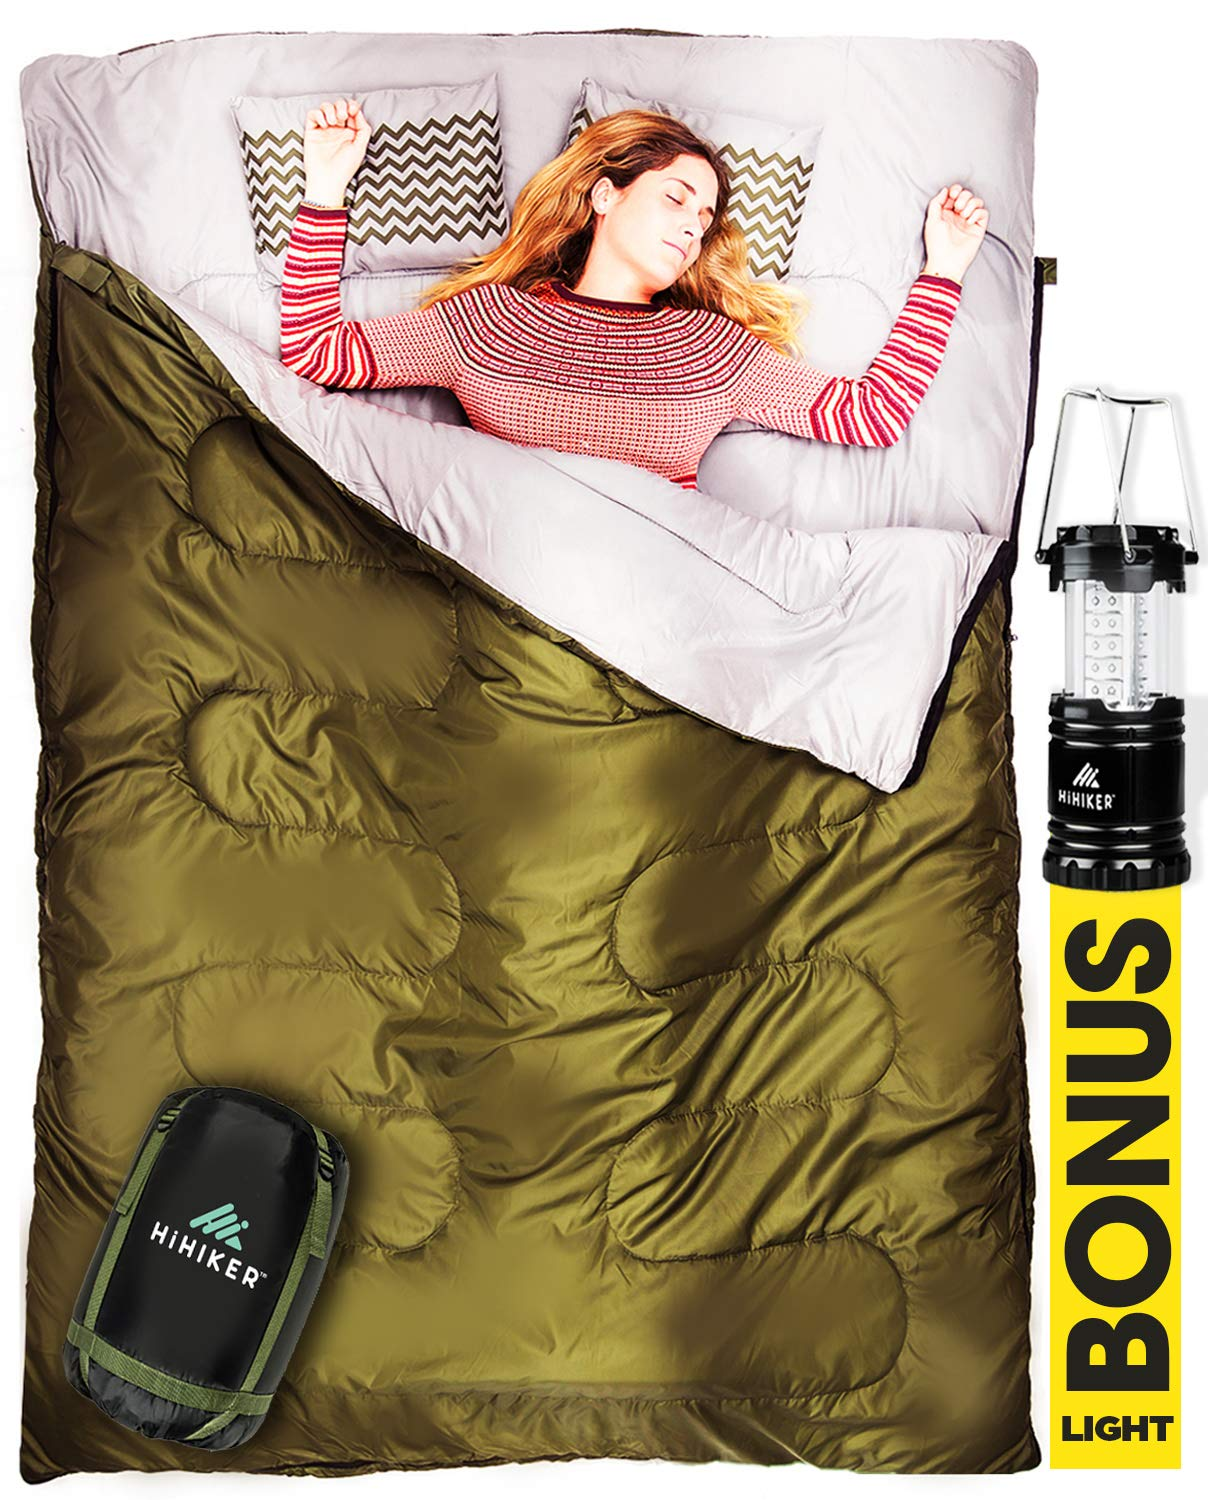 HiHiker Double Sleeping Bag Queen Size XL - Bonus Camping Light - for Camping, Hiking Backpacking and Cold Weather, Portable, Waterproof and Lightweight - 2 Person Sleeping Bag 3